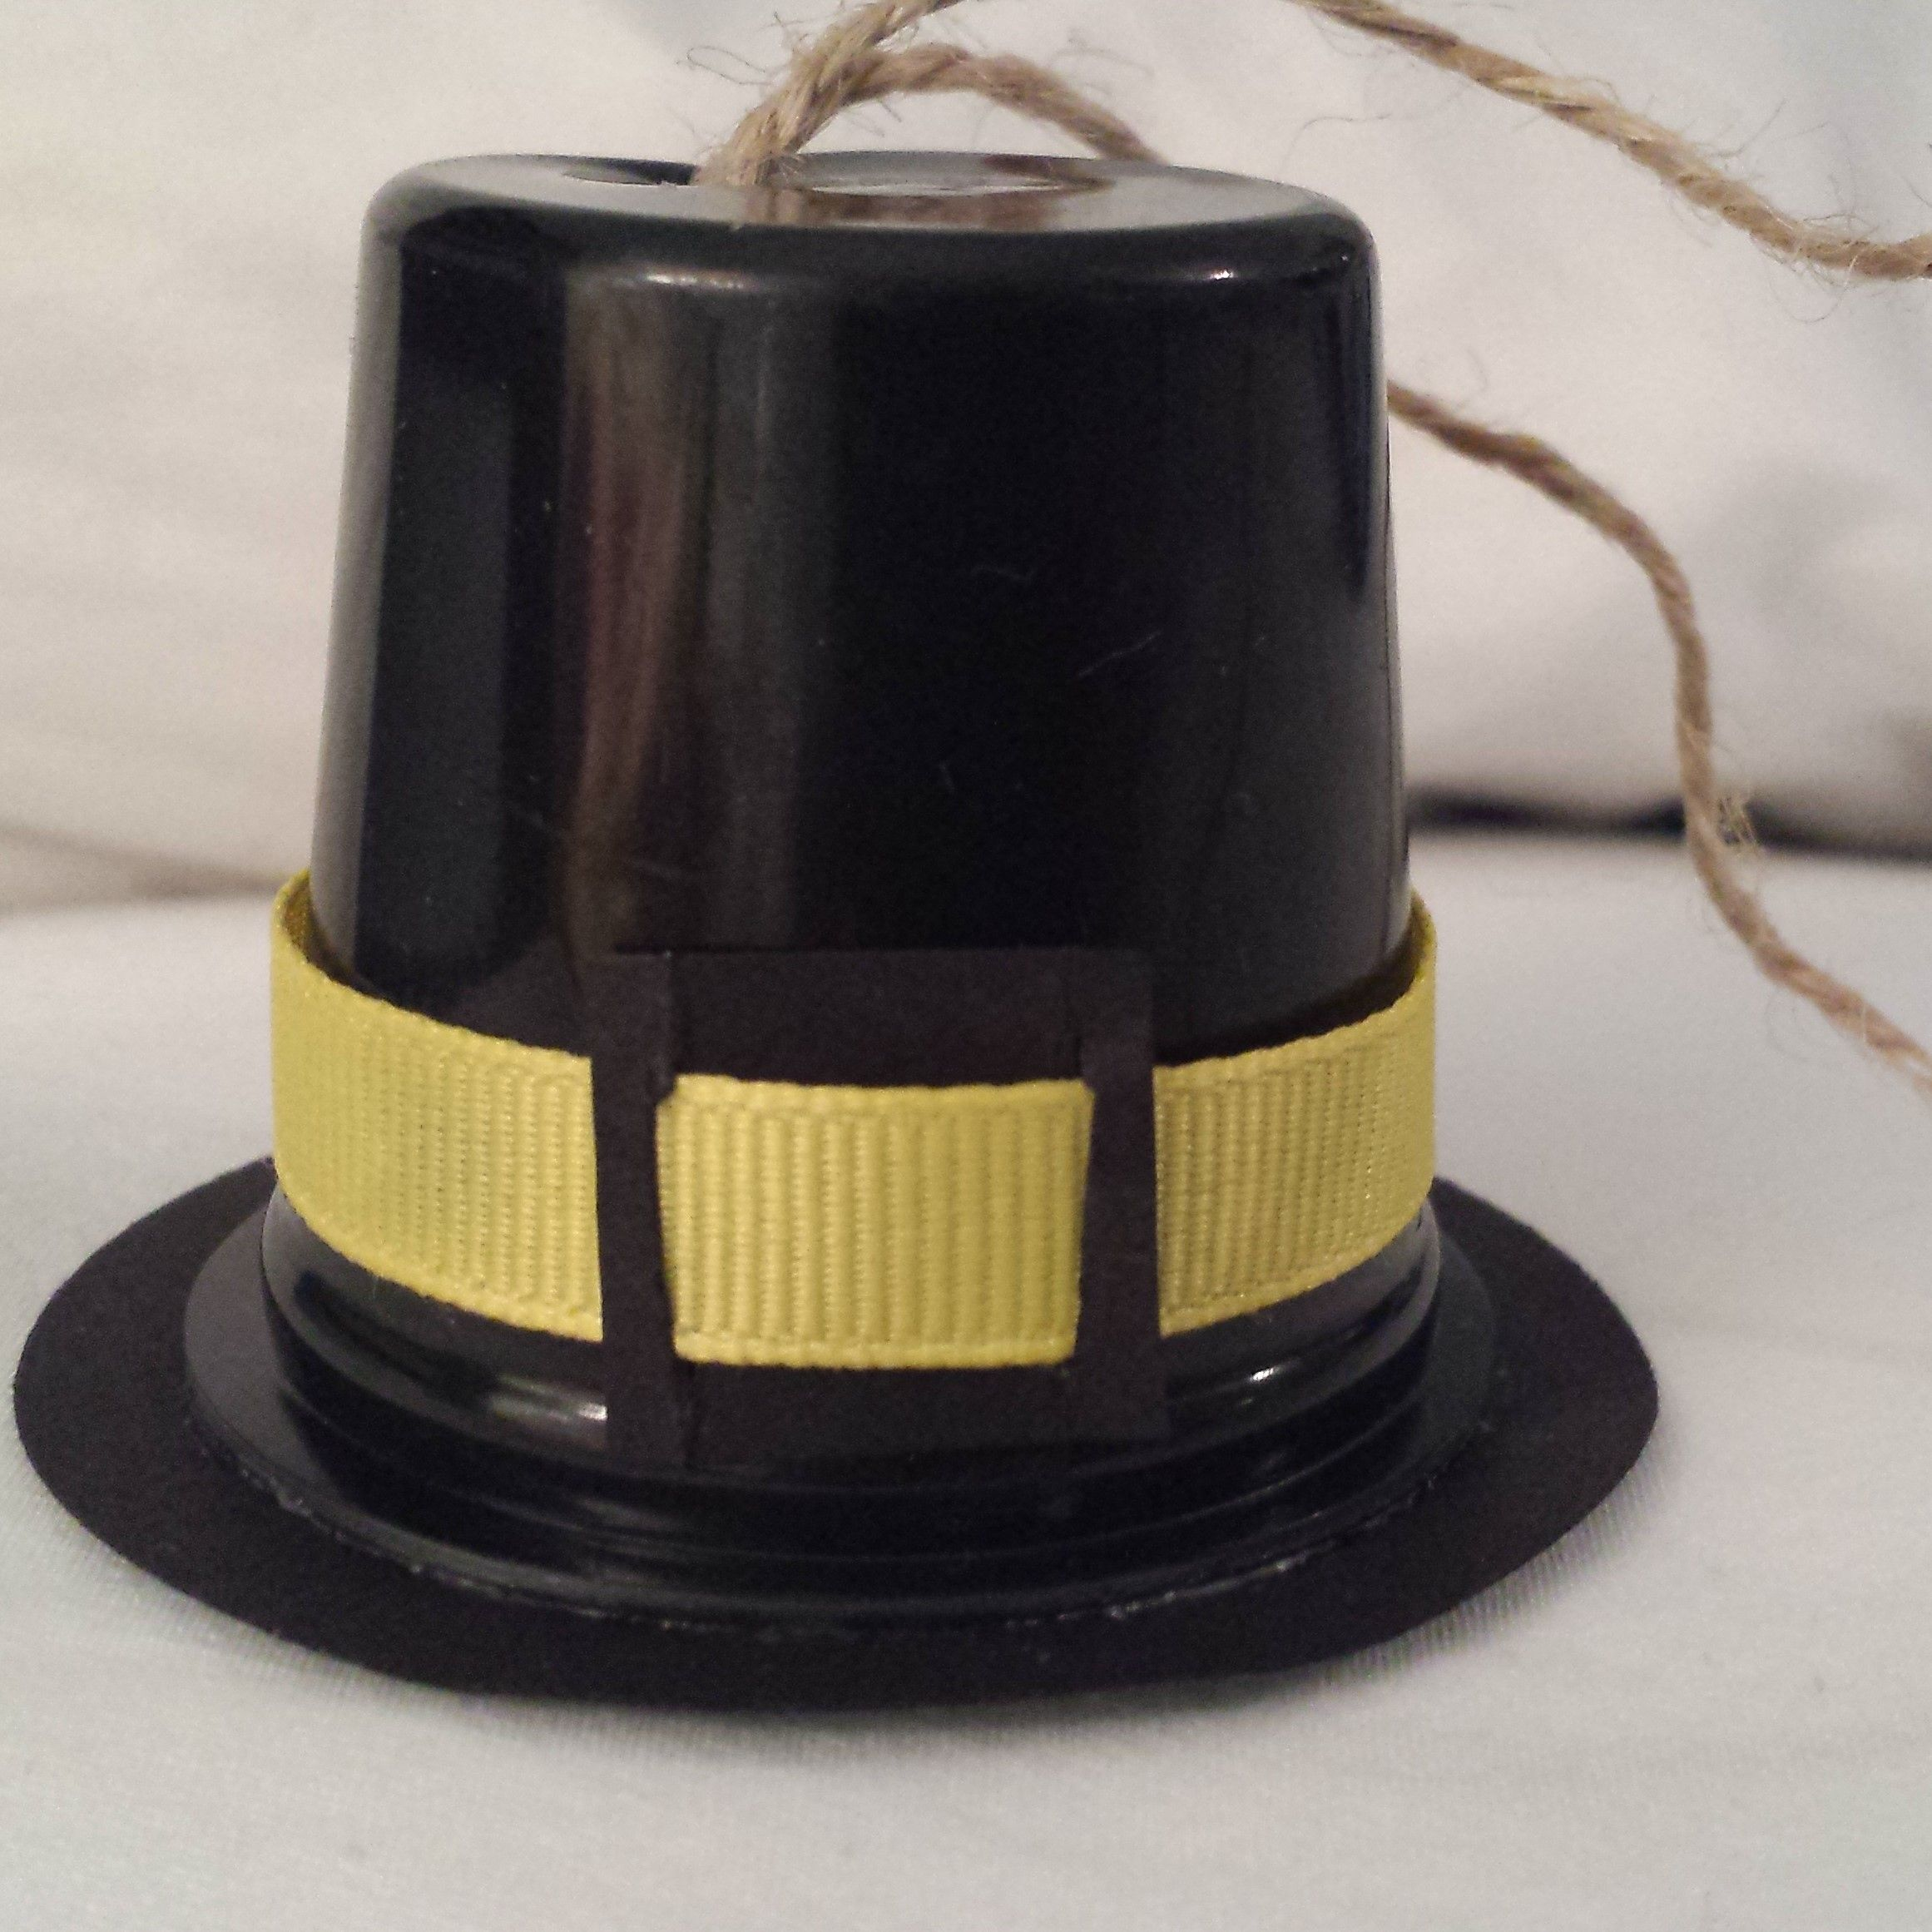 Pilgrim Hat - Black K-Cup; 2 inch circle punch; black cardstock; Yellow Grosgrain ribbon; Cardstock buckle; Twine looped and knotted in bottom hole